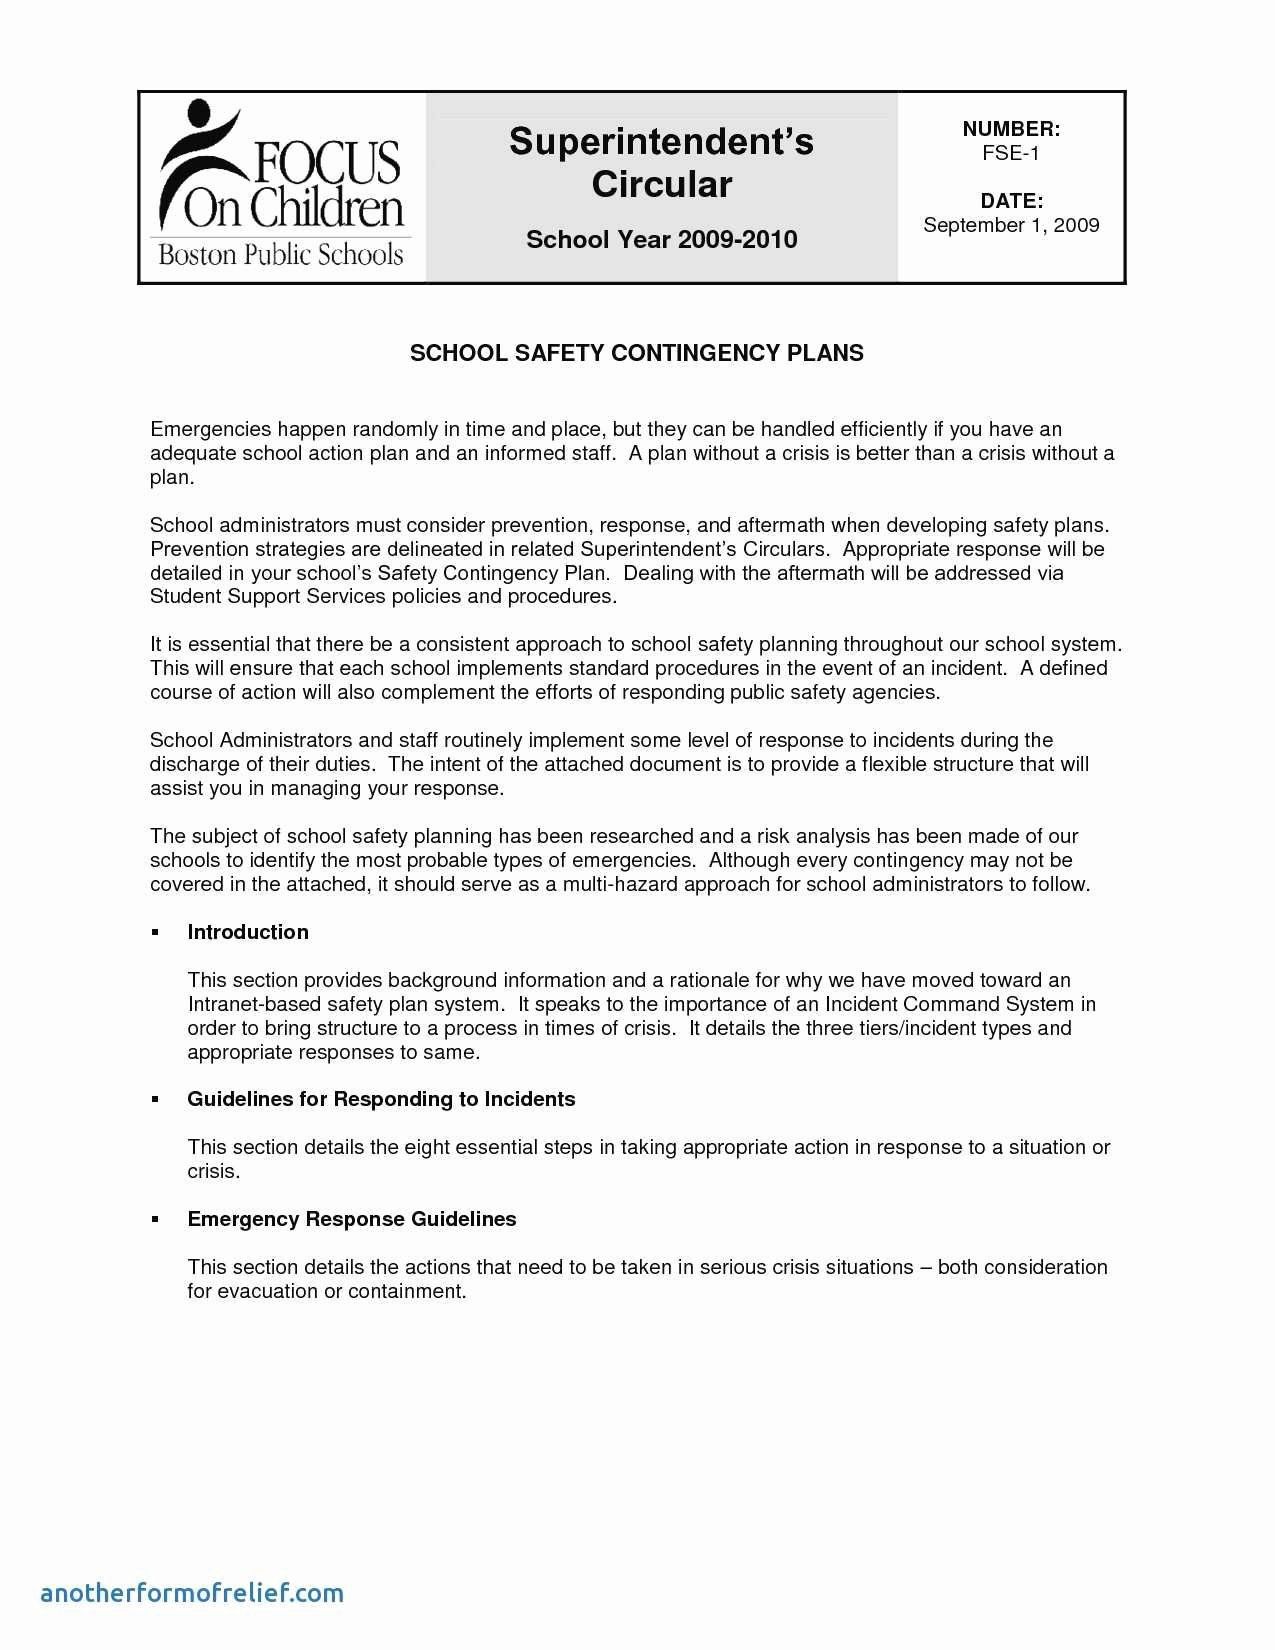 Incident Response Plan Template Awesome Fresh Nist Cyber Incident Response Plan Template